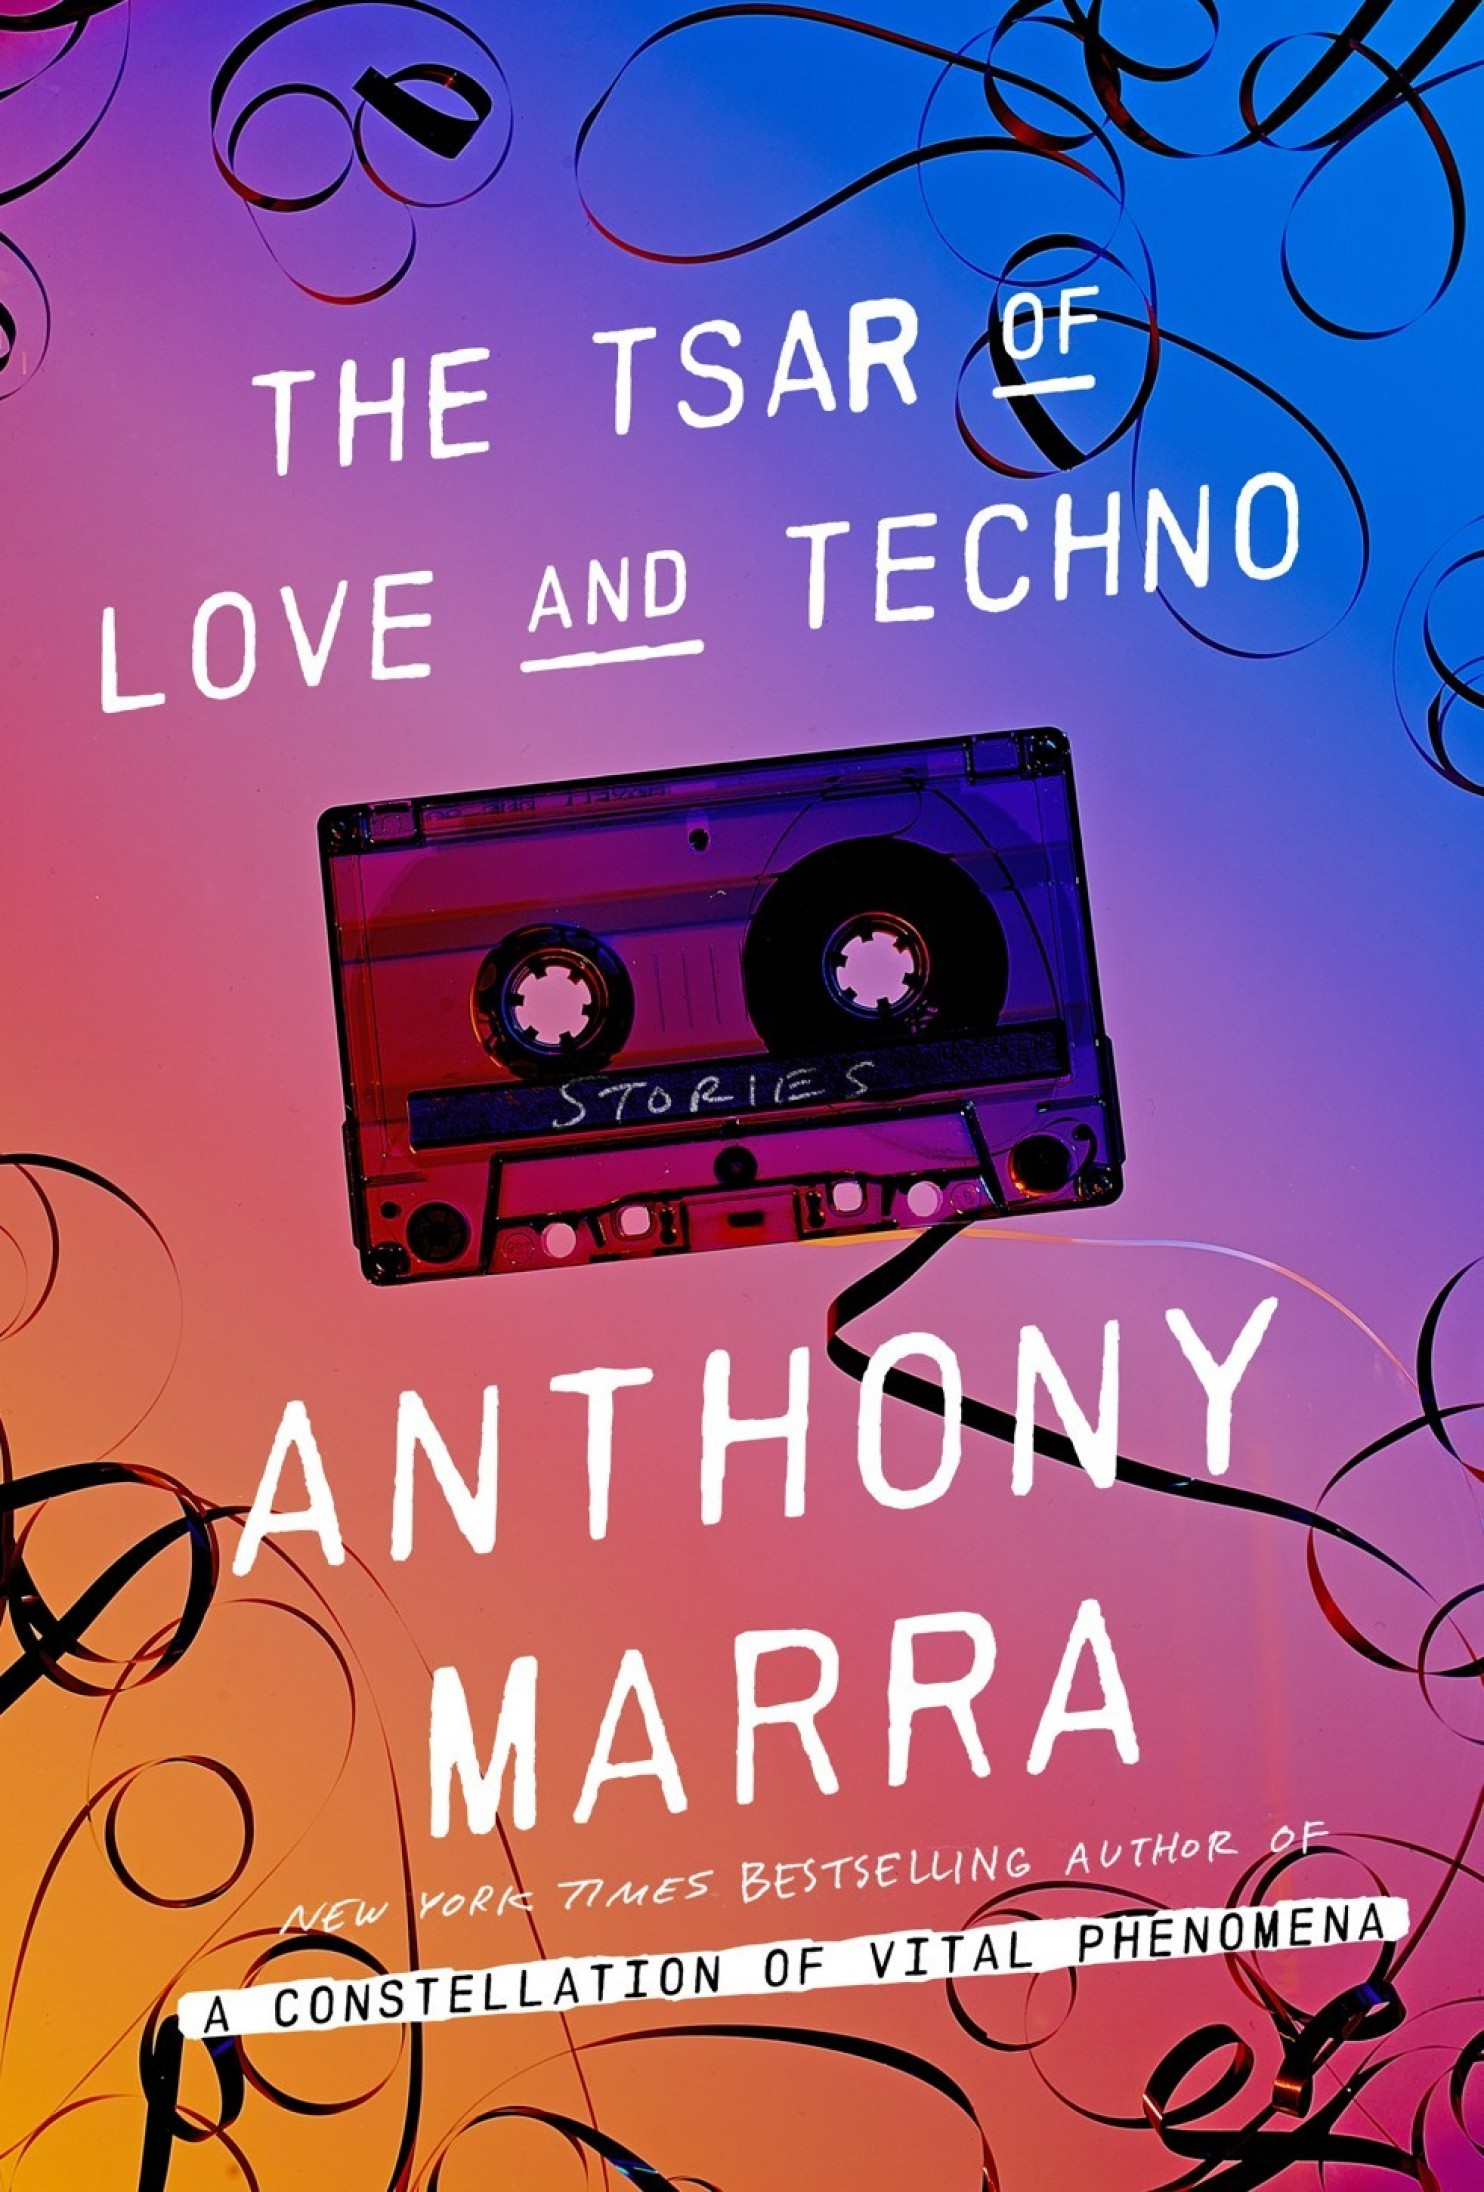 Anthony Marra's second book has stuck with me all year. Hands-down, this was my favorite read of 2016.